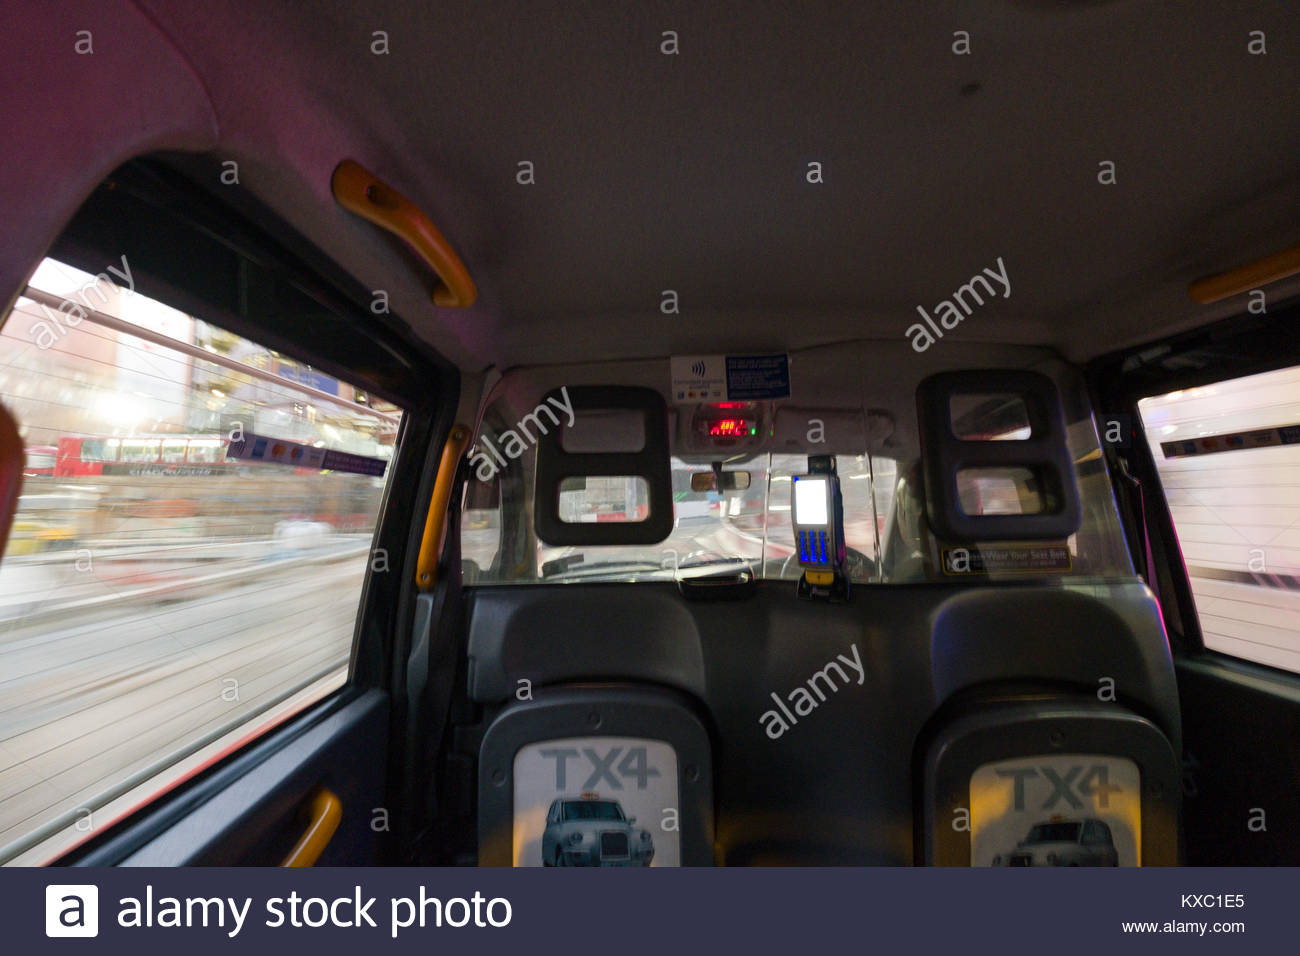 Inside passenger compartment of a hackney carriage at night, City of Westminster, London, England, United Kingdom - Stock Image